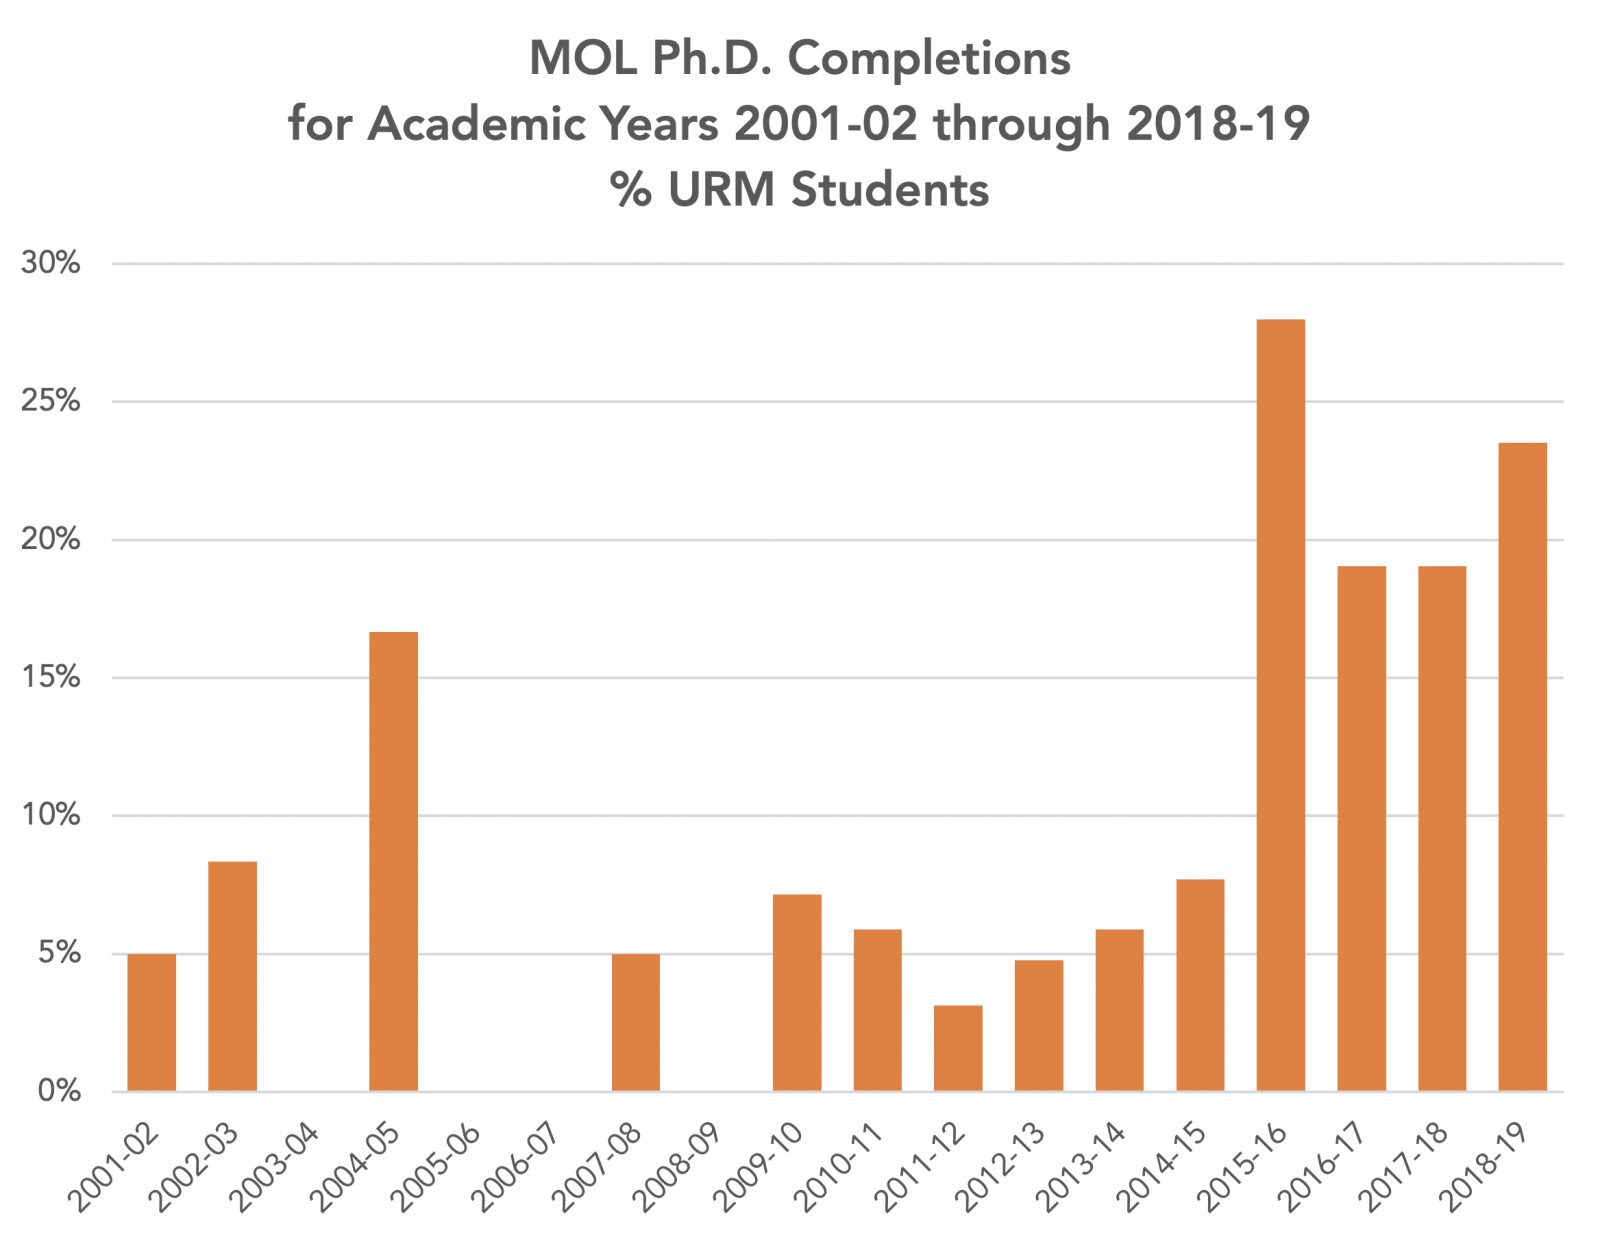 MOL Ph.D. Completions for Academic Years 2001-02 through 2018-19, % URM Students